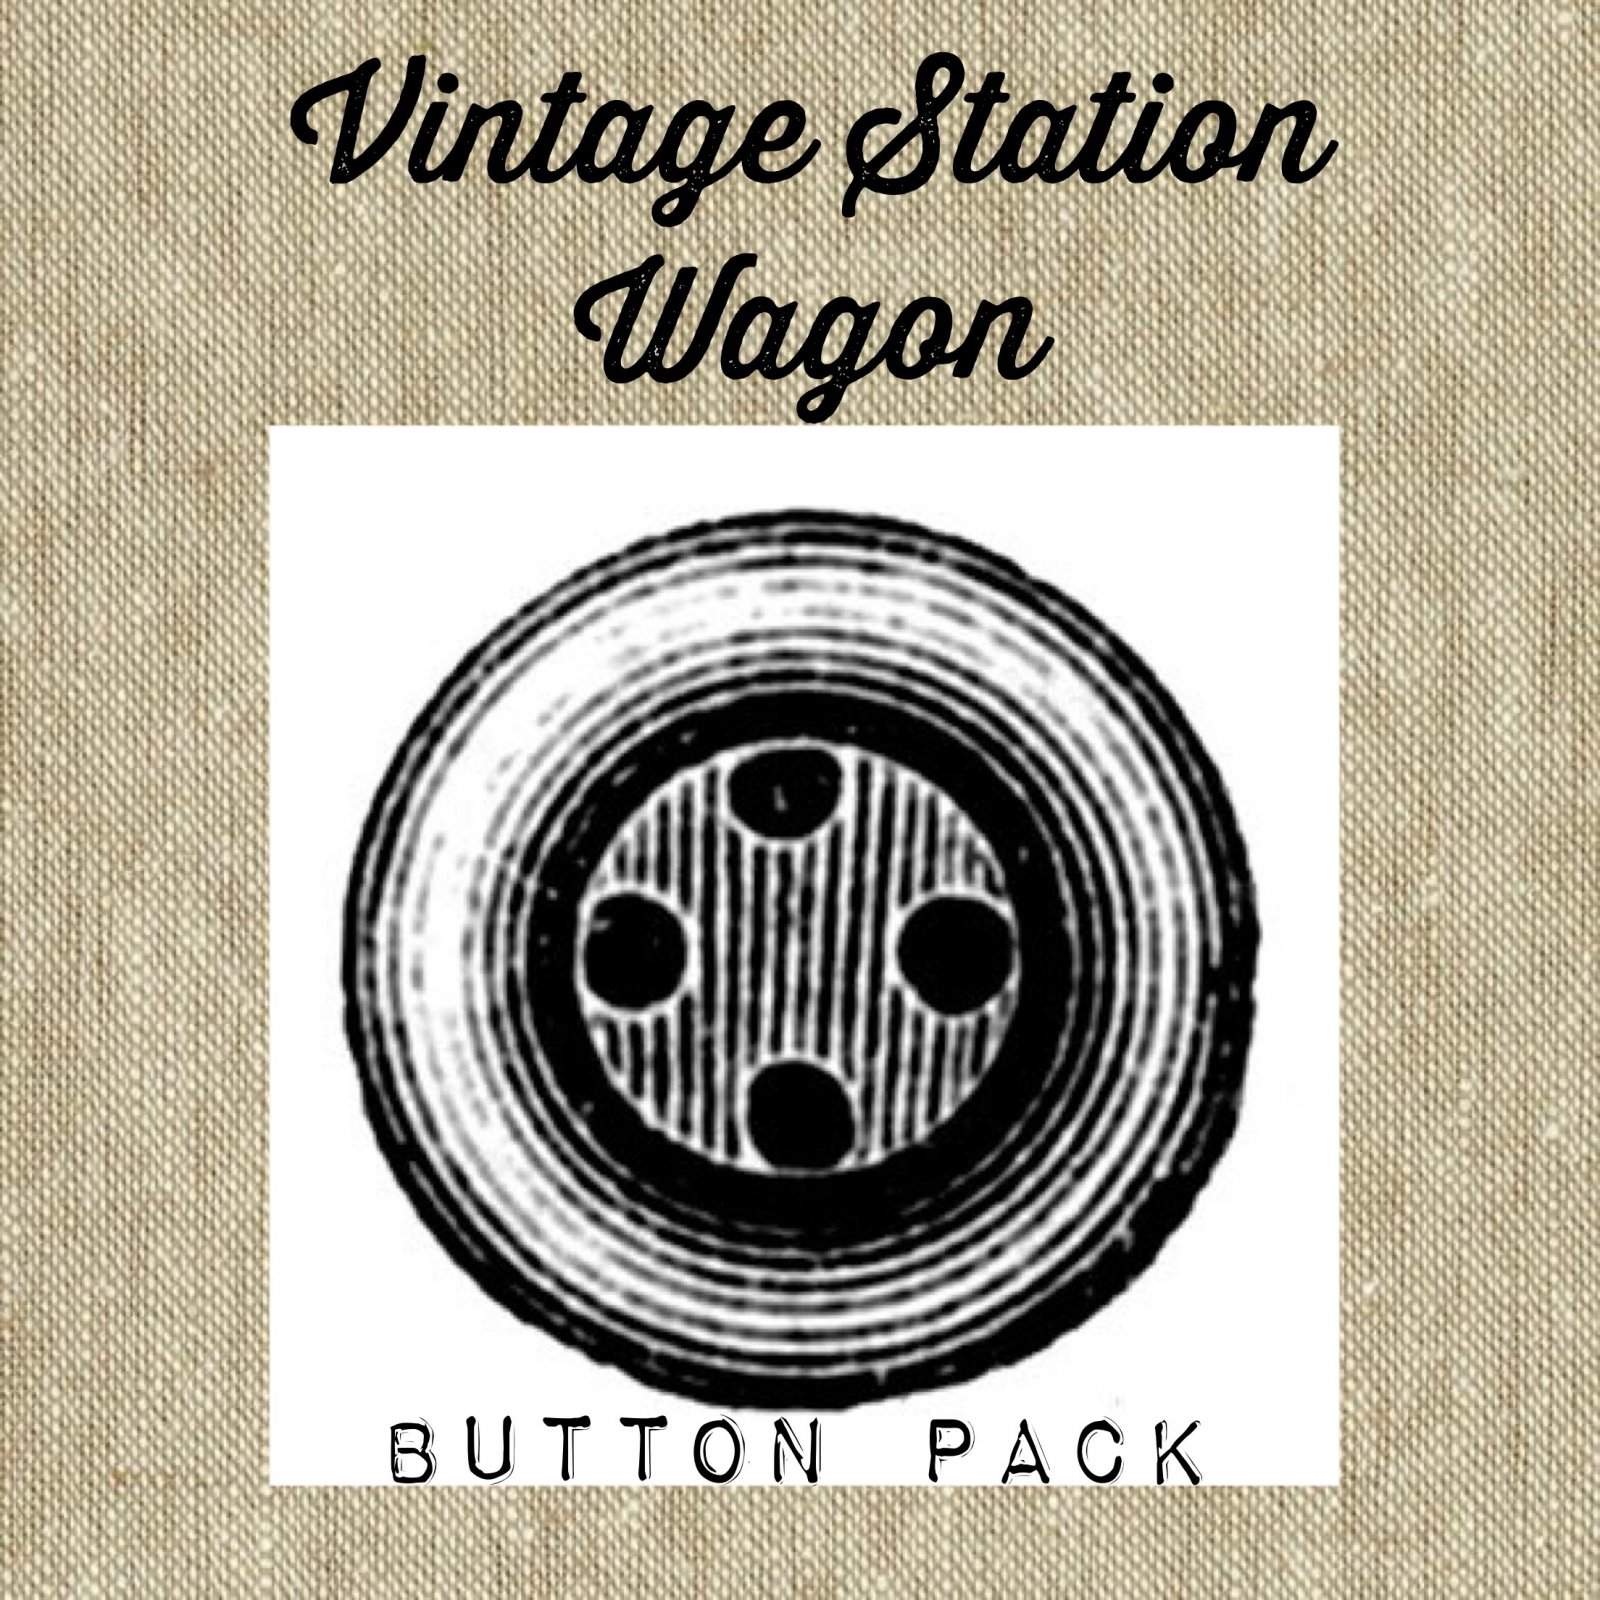 Vintage Station Wagon Button Pack